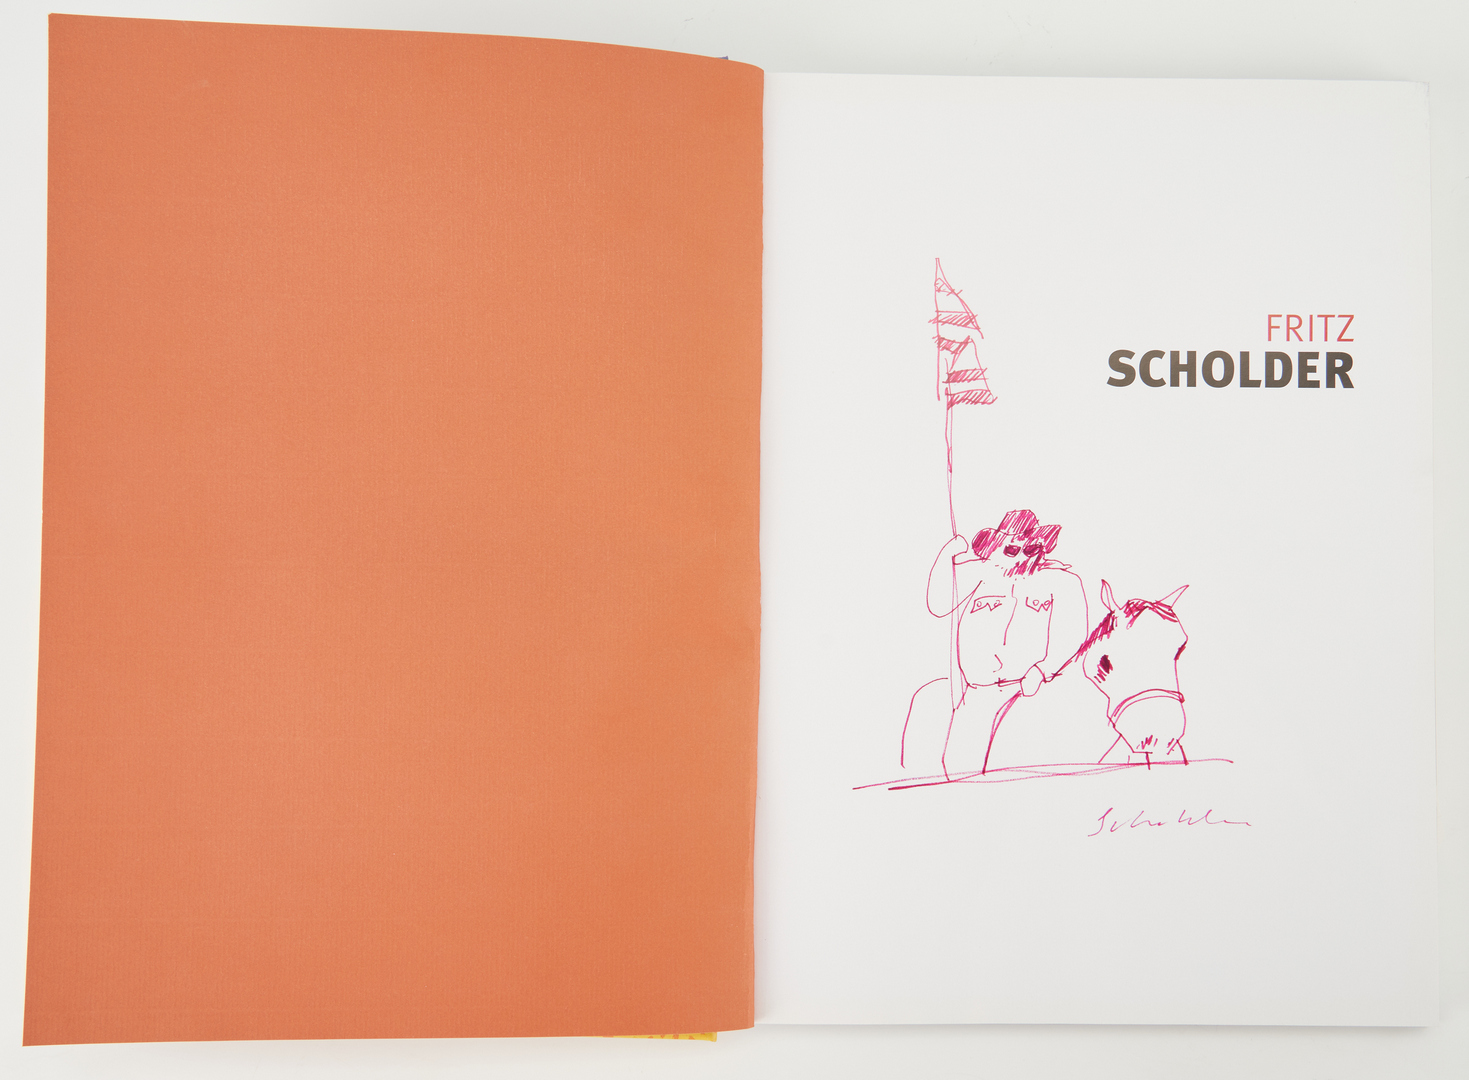 Lot 602: Fritz Scholder Serigraph and Book, 2 items